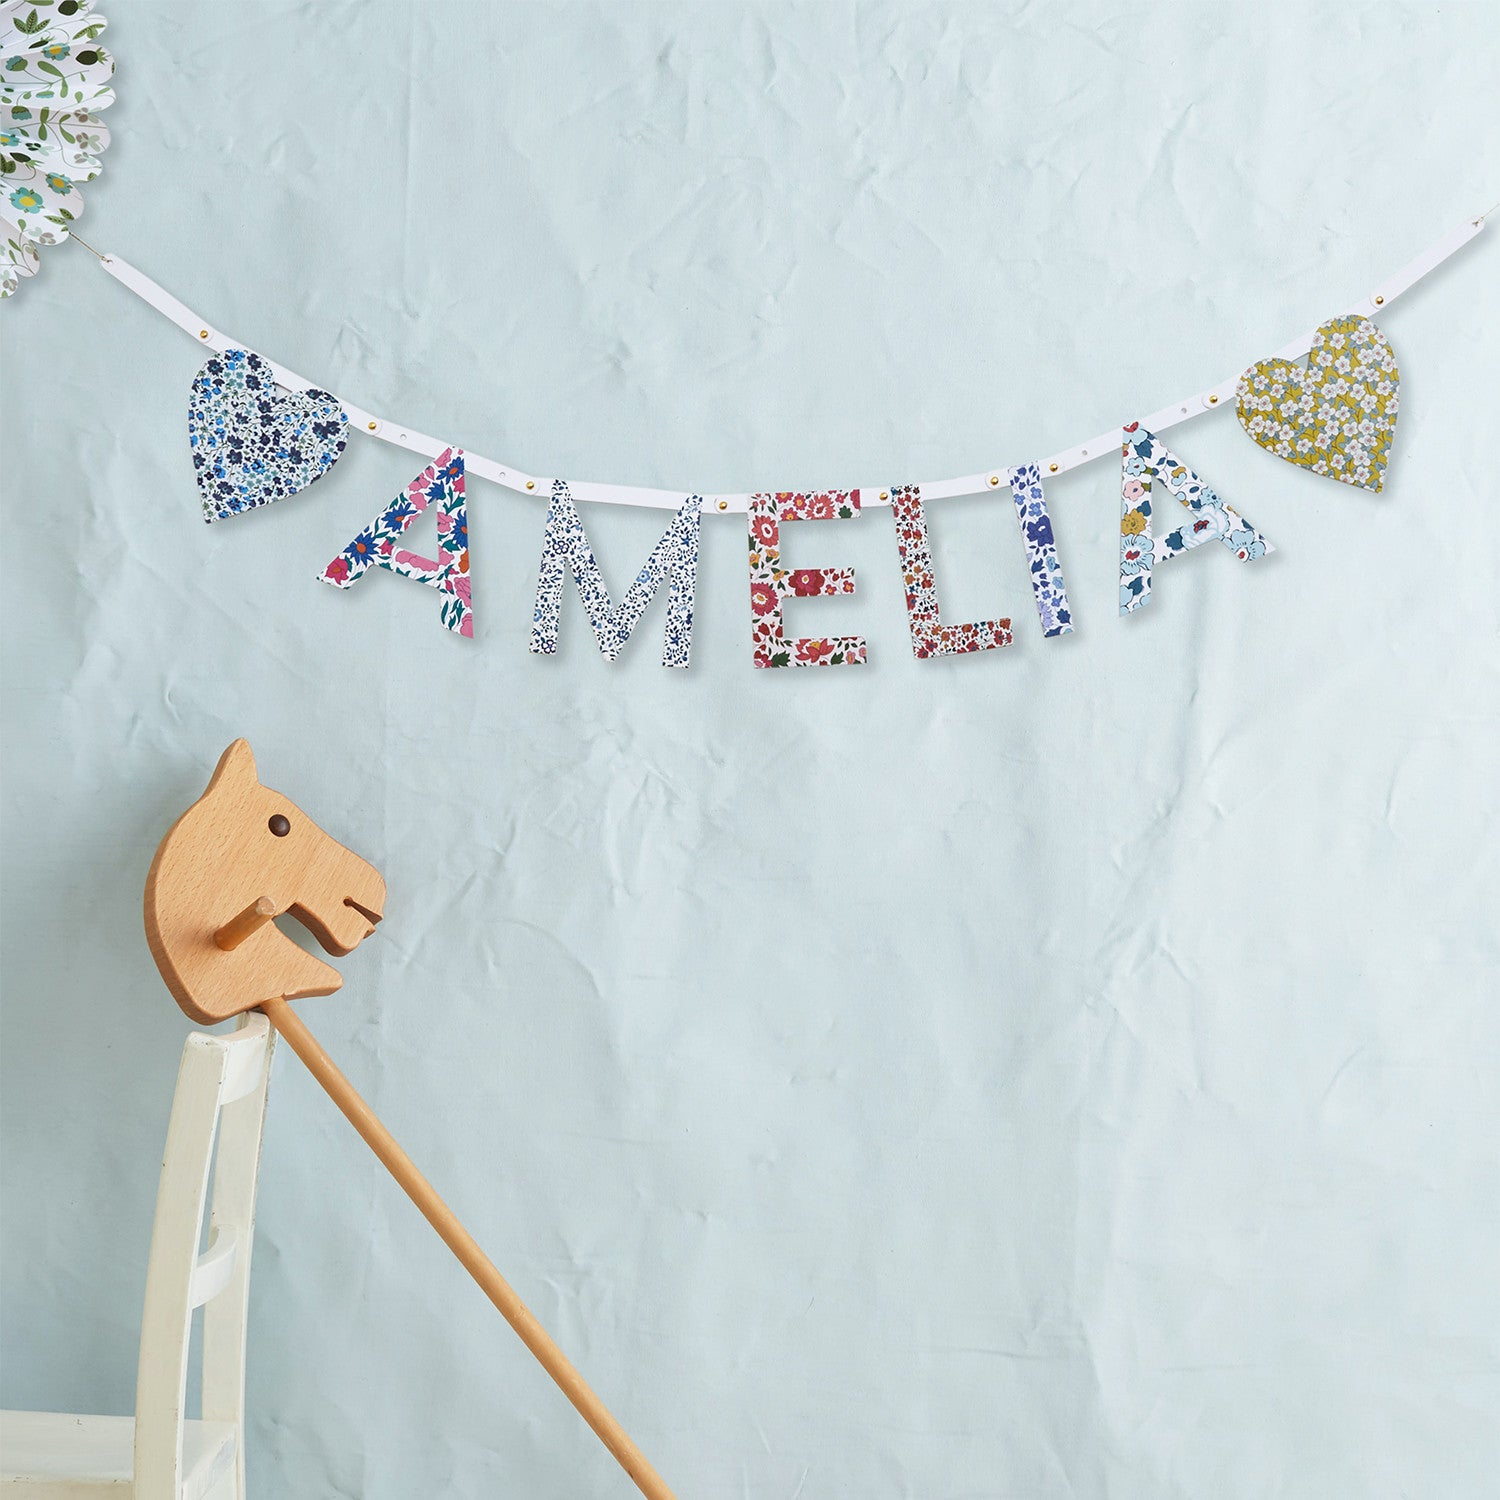 Liberty DIY Letter Garland Kit | Meri Meri